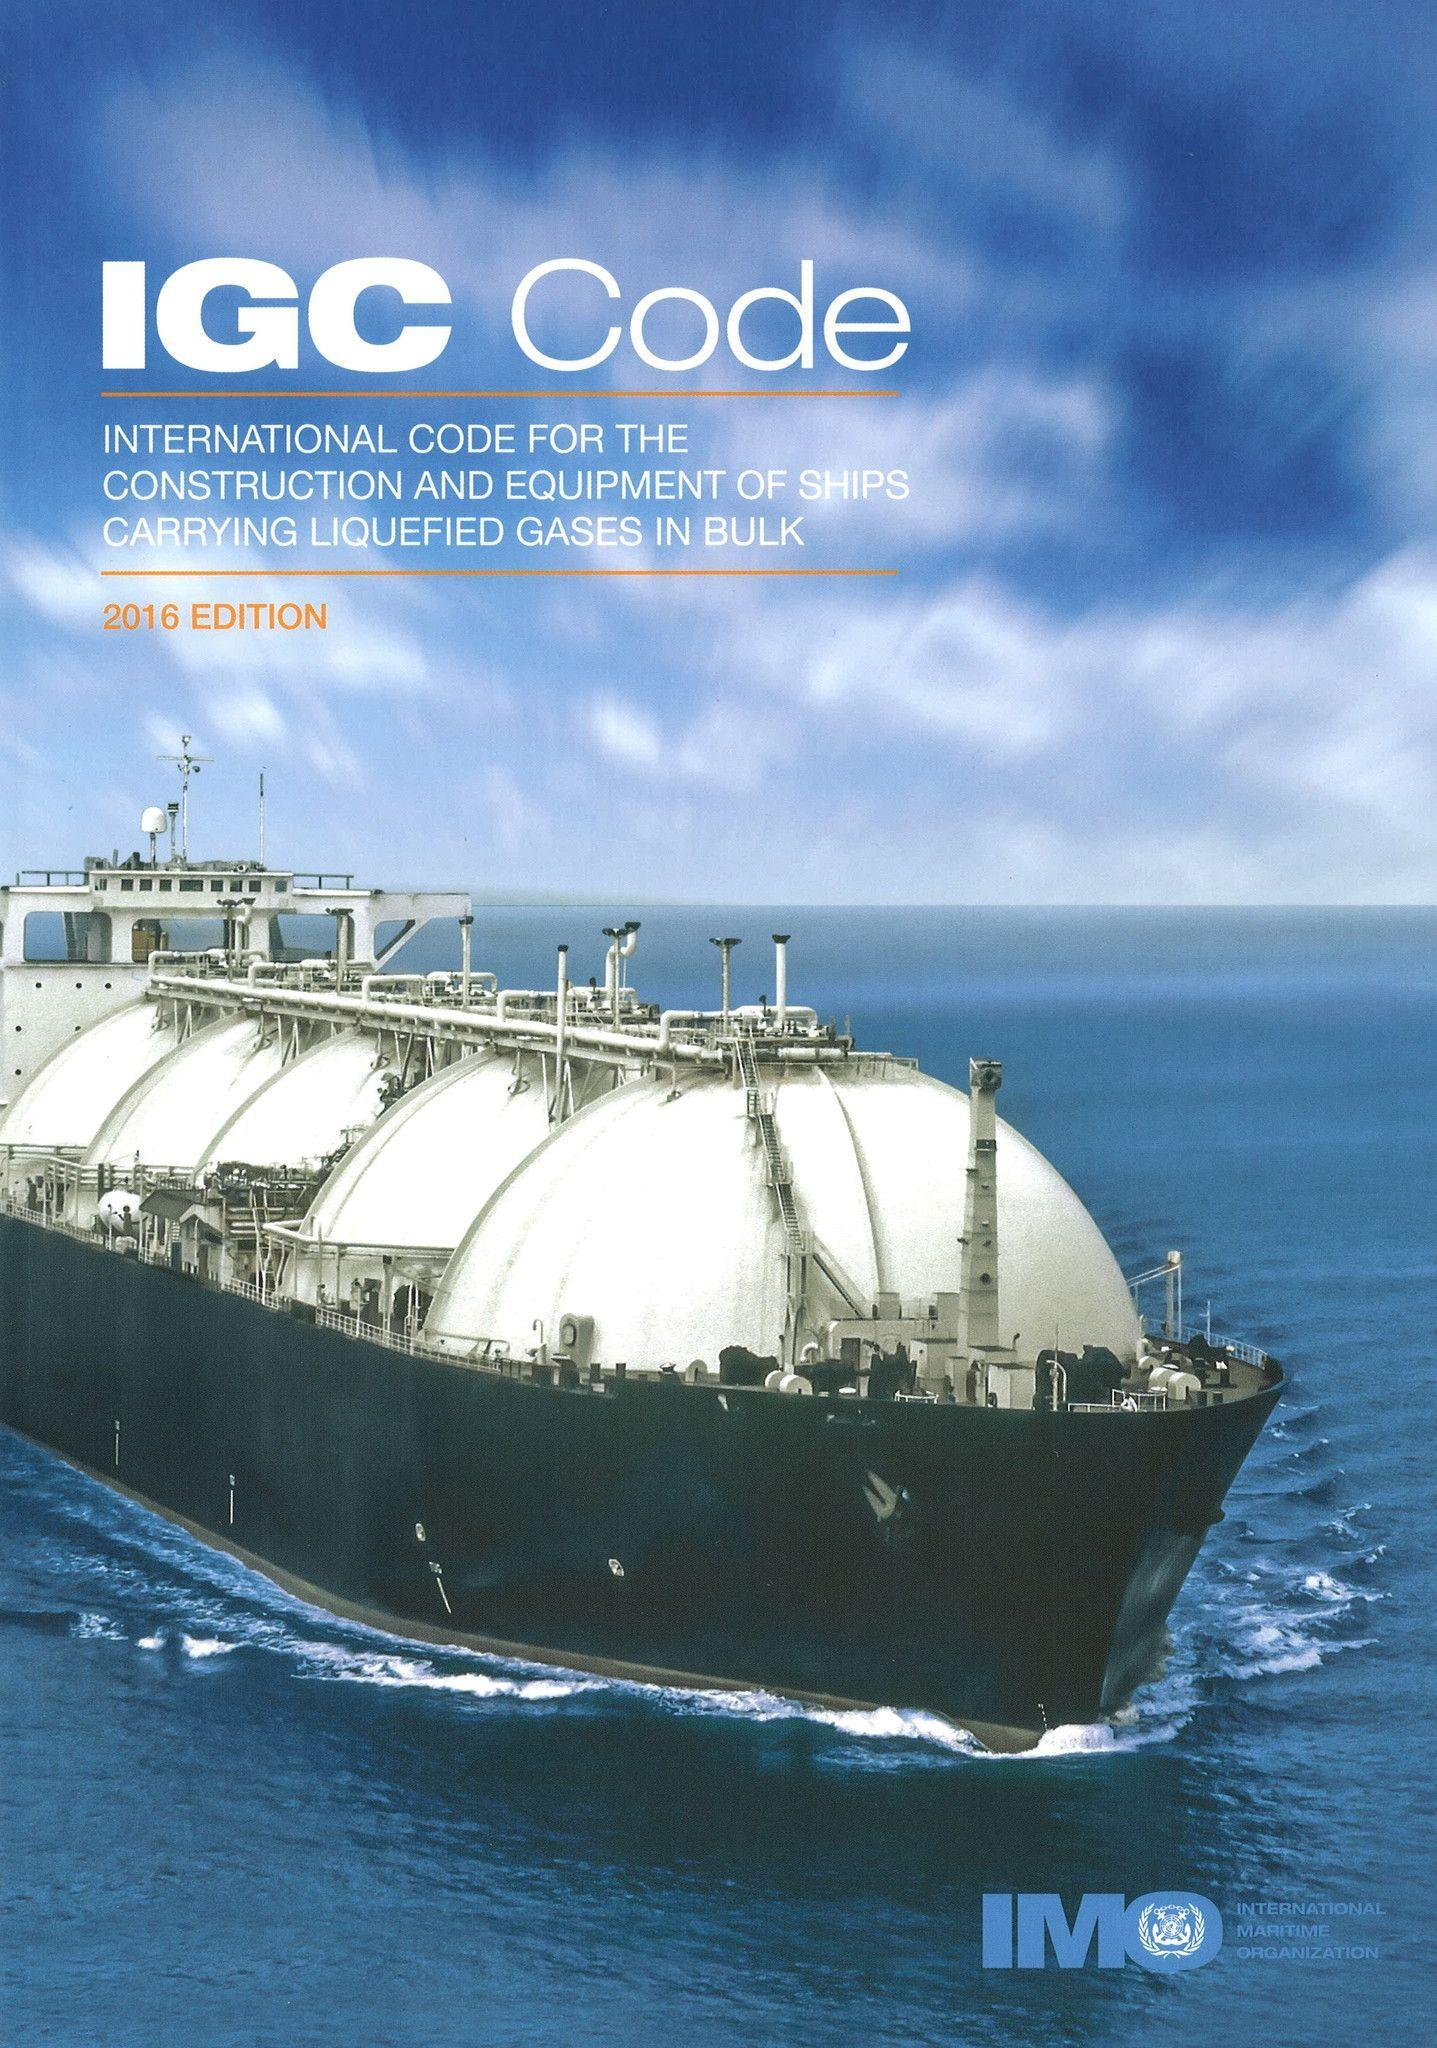 IMO IGC Code - International Code for the Construction and Equipment of Ships carrying Liquefied Gases in Bulk - IMO IA104E